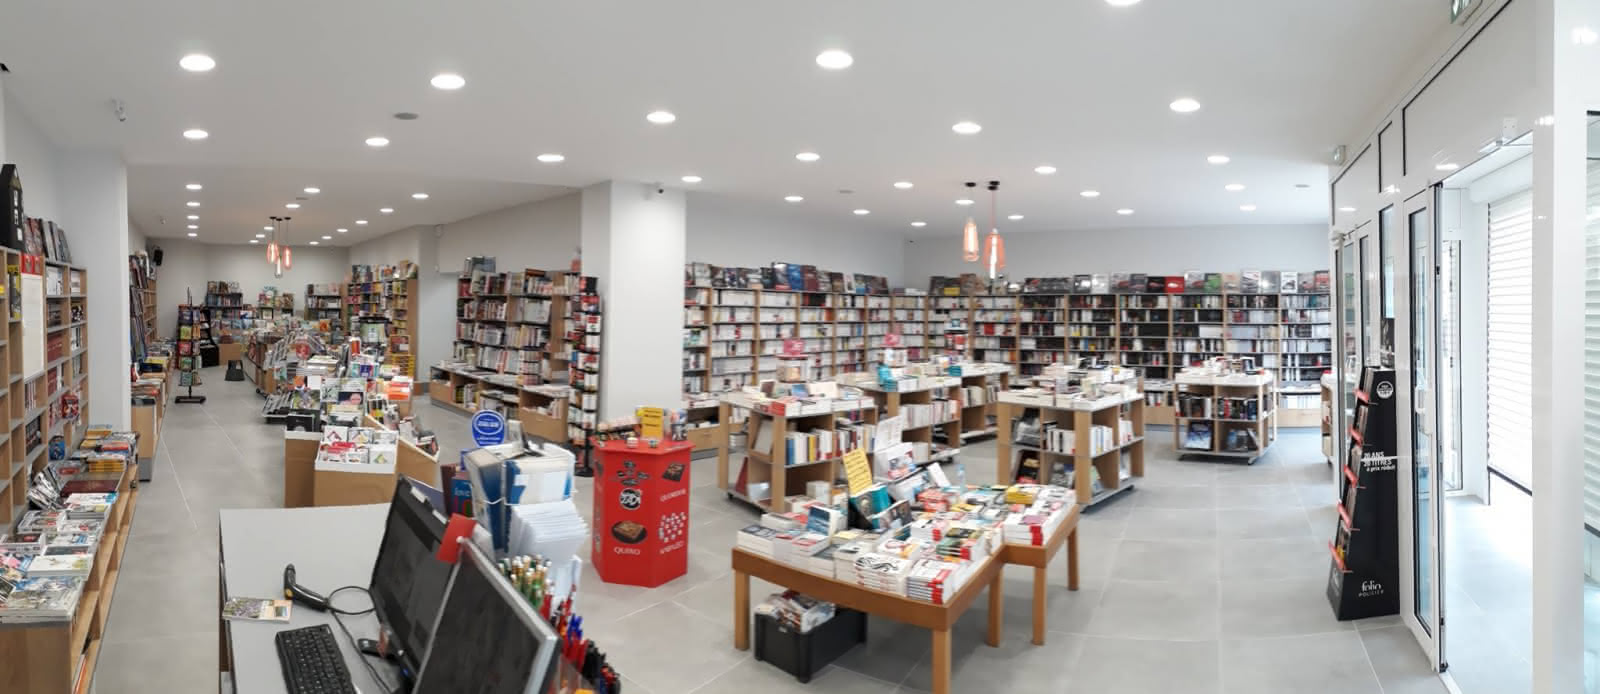 Librairie L'Oncle Tome